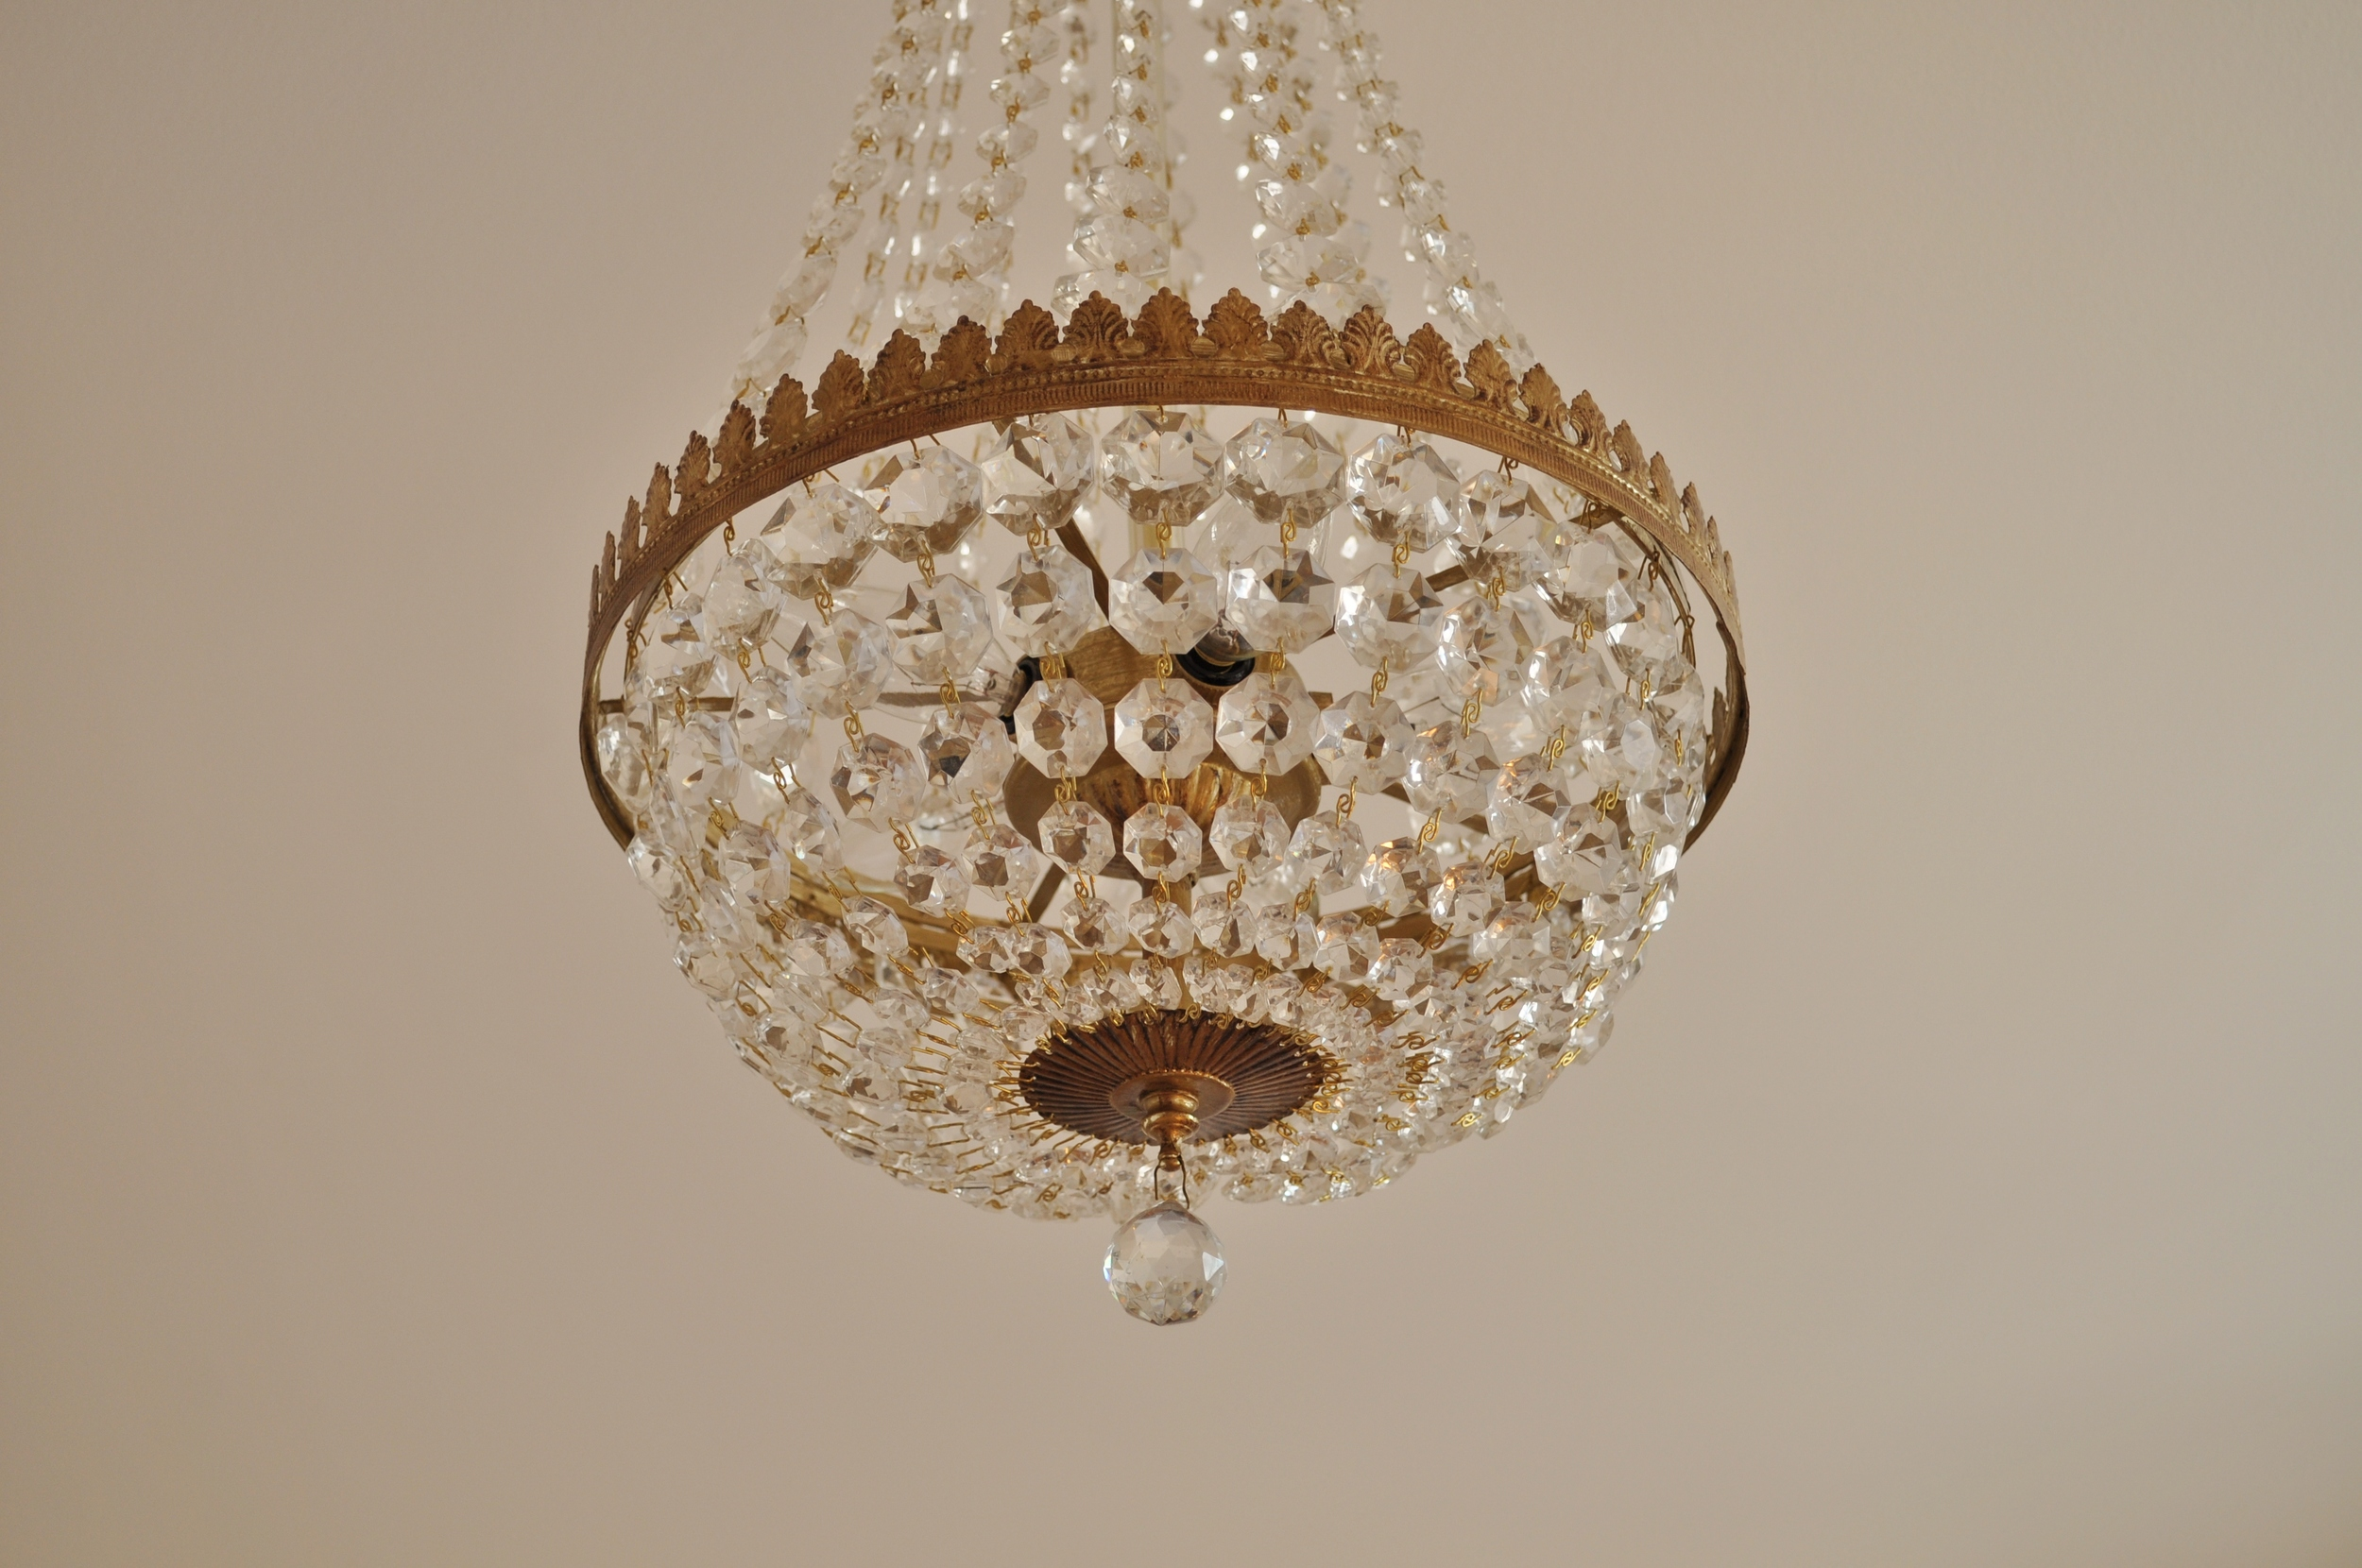 Chandelier After, Closeup